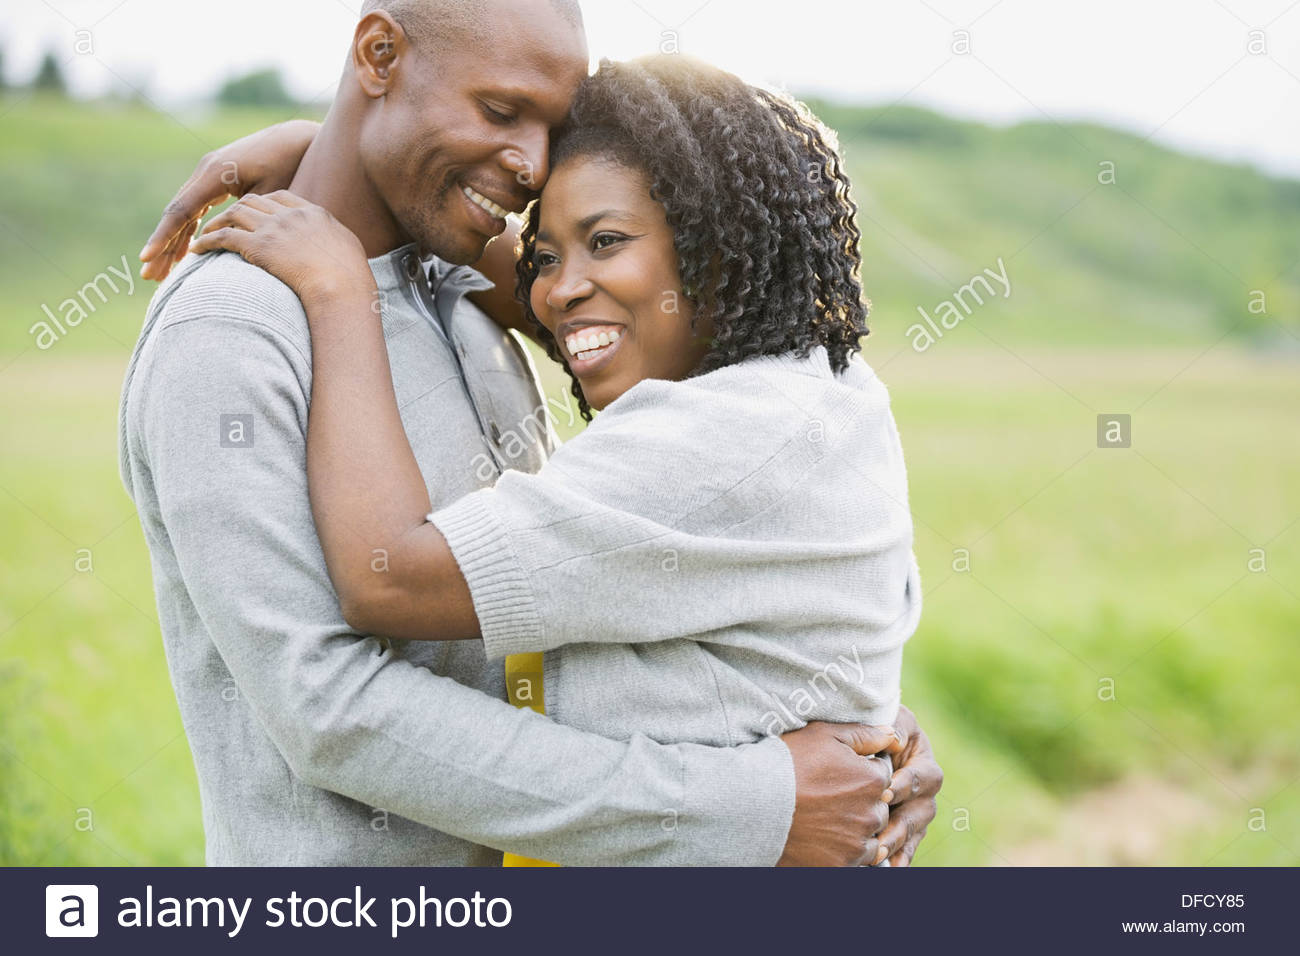 Affectionate couple embracing outdoors - Stock Image